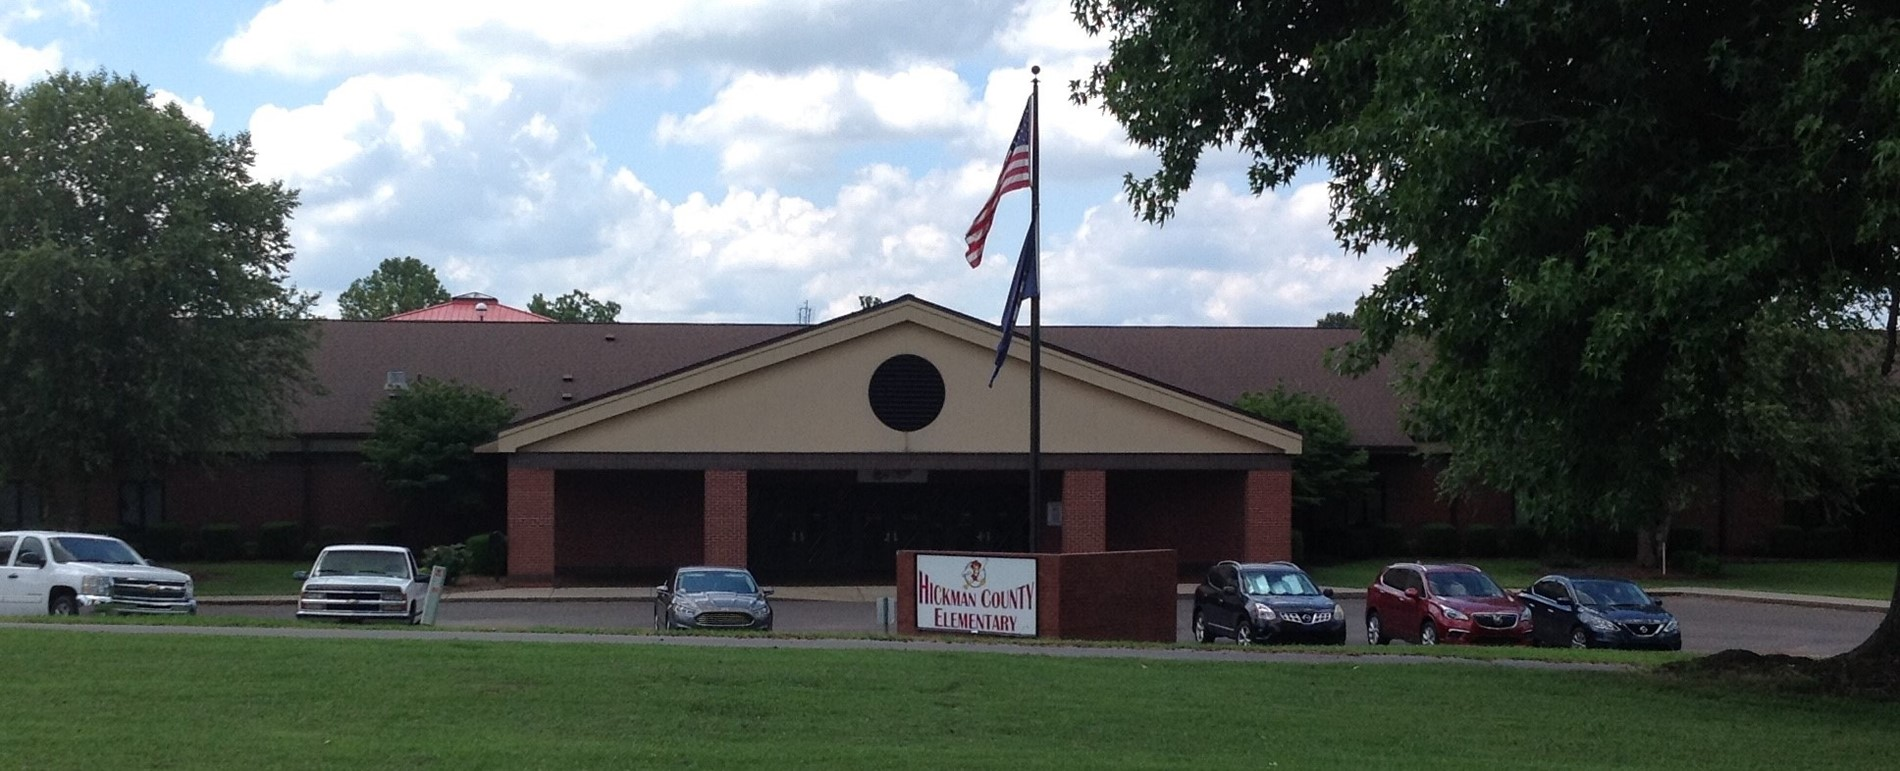 Hickman County Elementary School